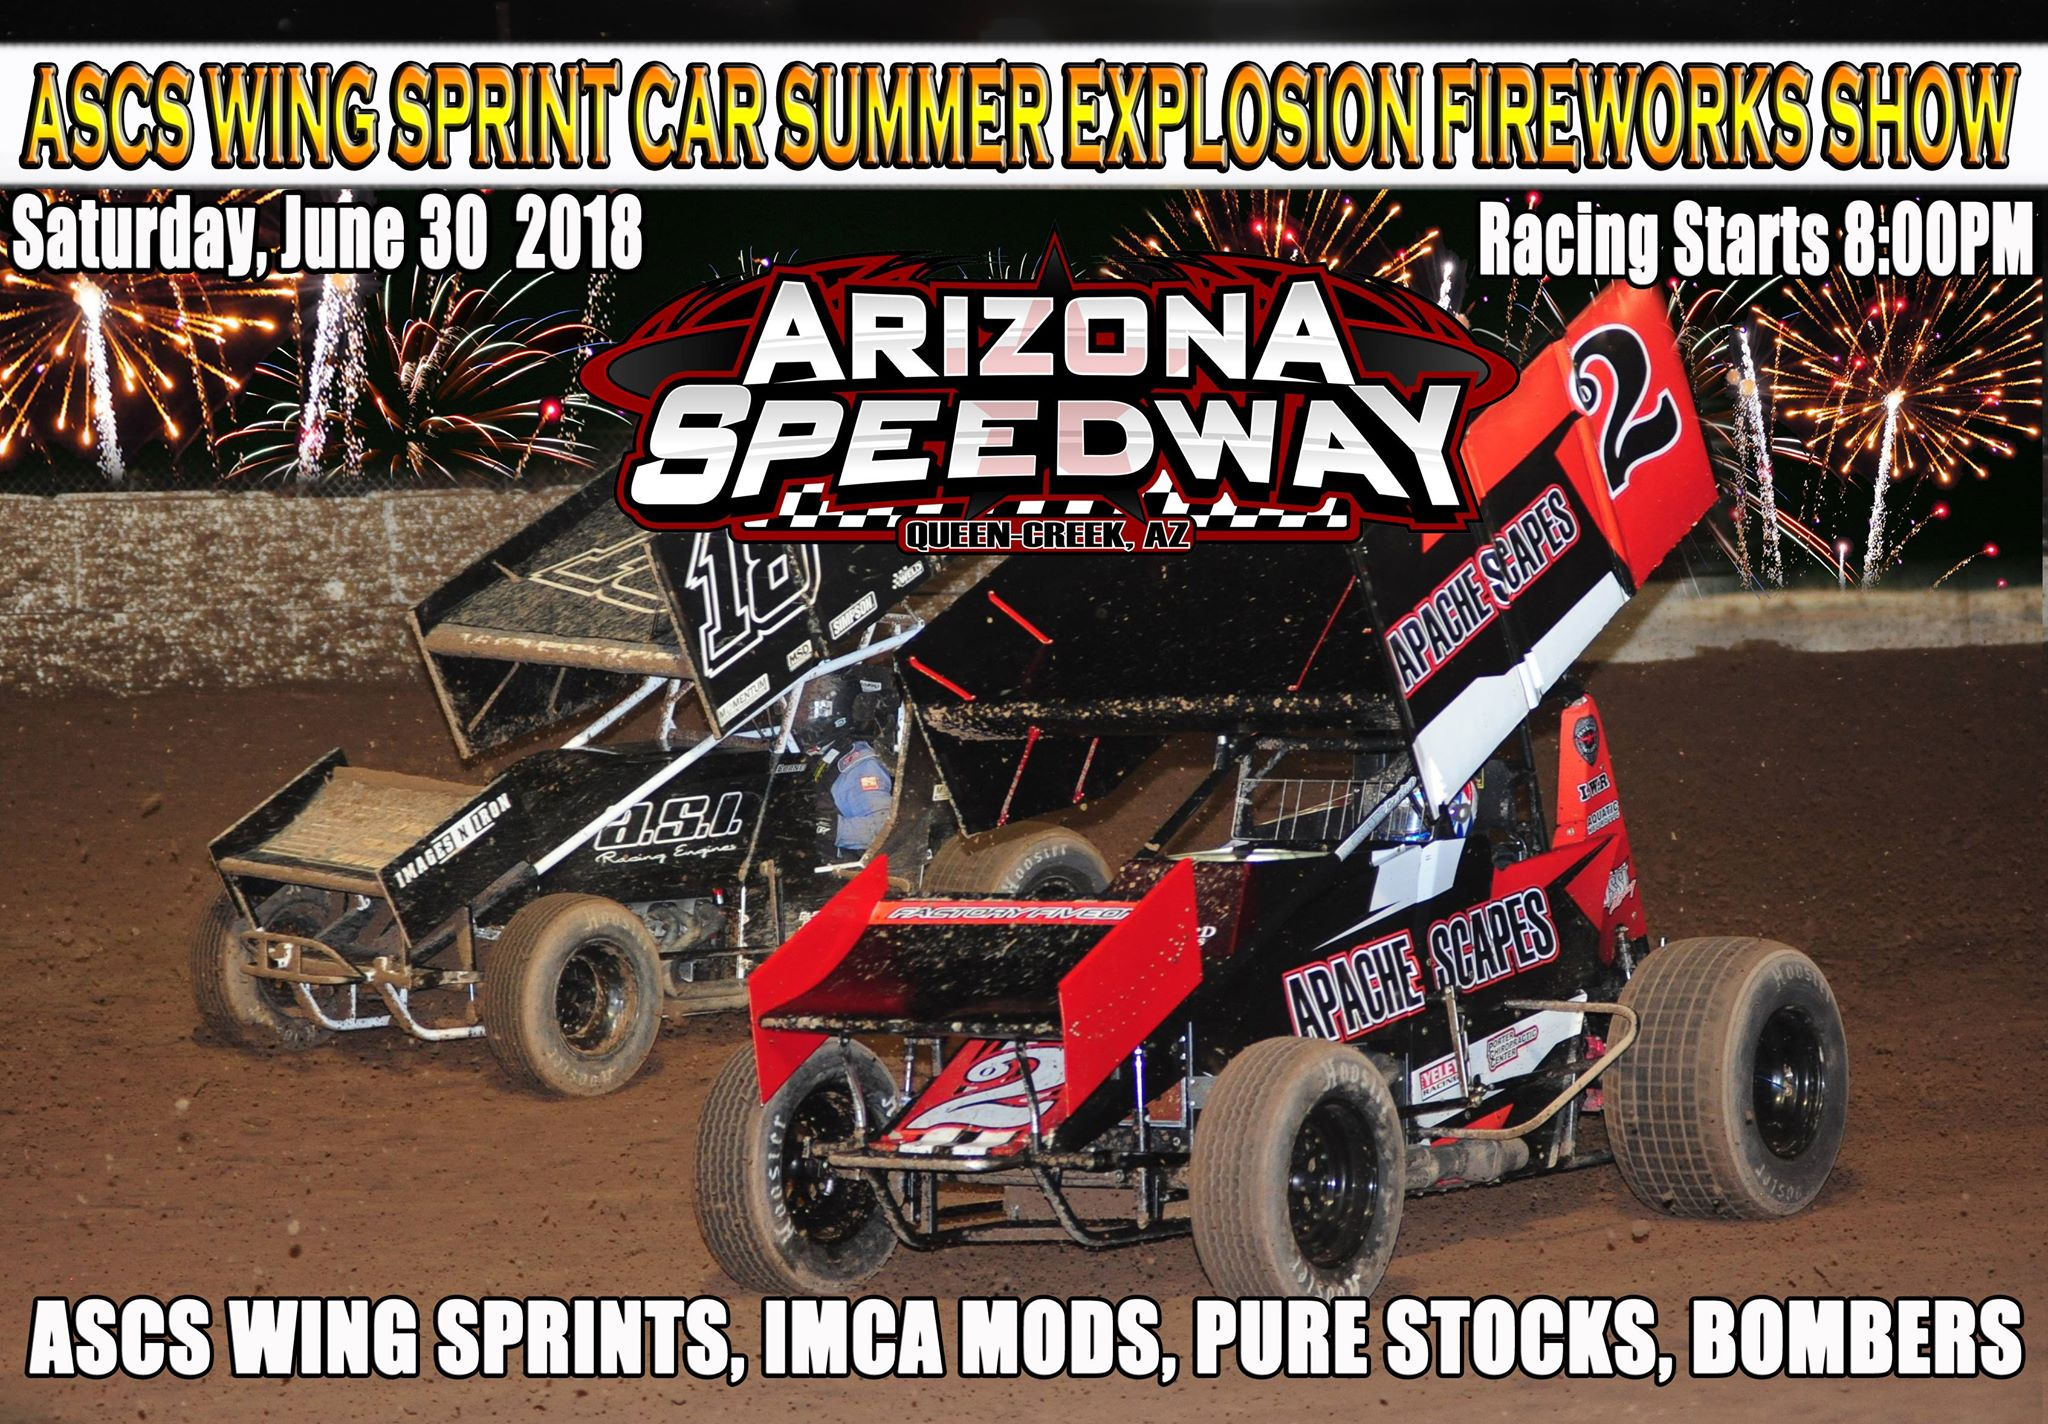 ASCS WING SPRINT CAR SUMMER EXPLOSION / FIREWORKS SHOW – Arizona